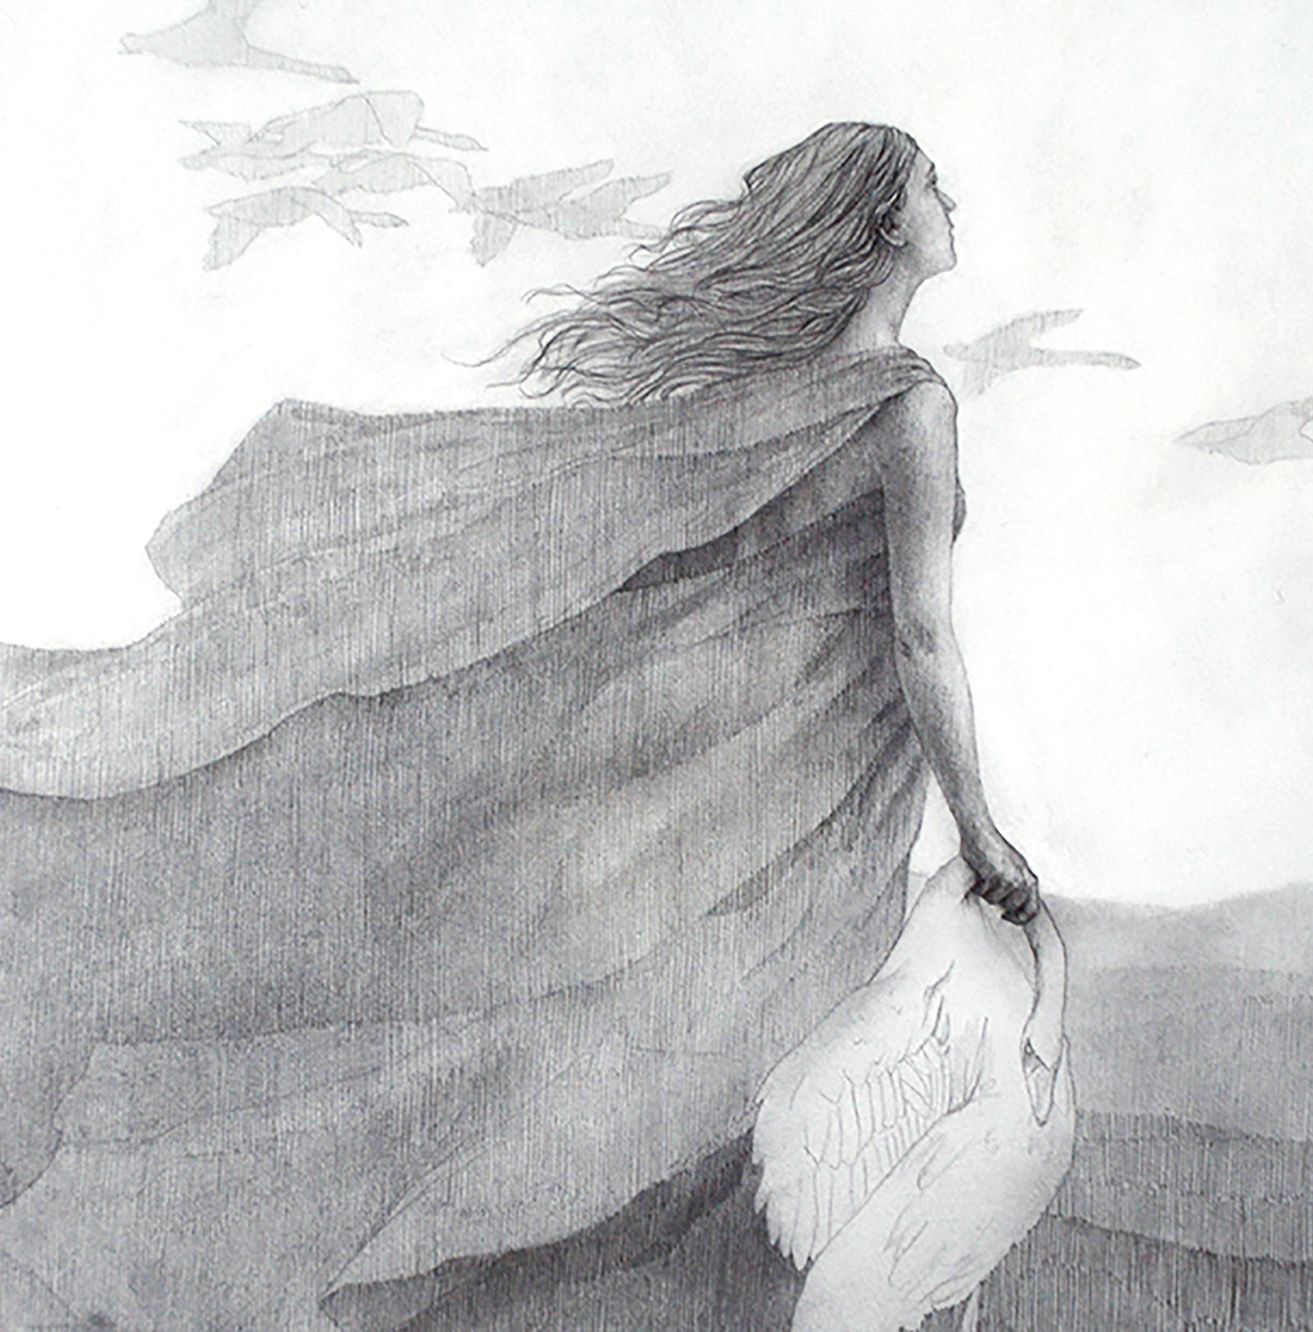 Graphite illustration of woman holding a dead swan looking at a flock of birds with the darkest values blocked into her cloak